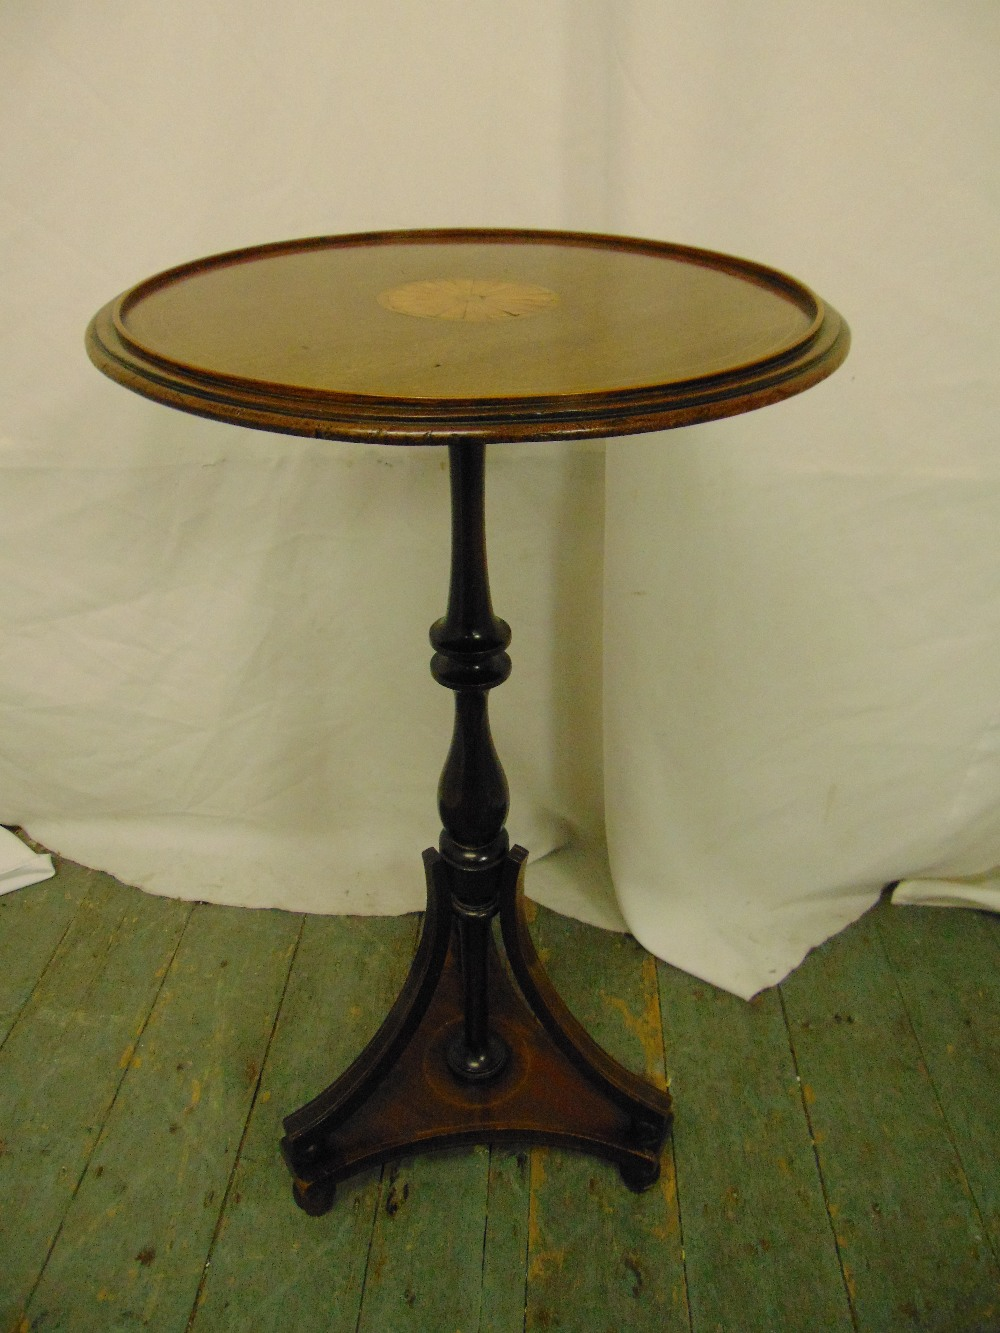 Lot 21 - An Edwardian circular mahogany inlaid side table, the knopped stem on triform support